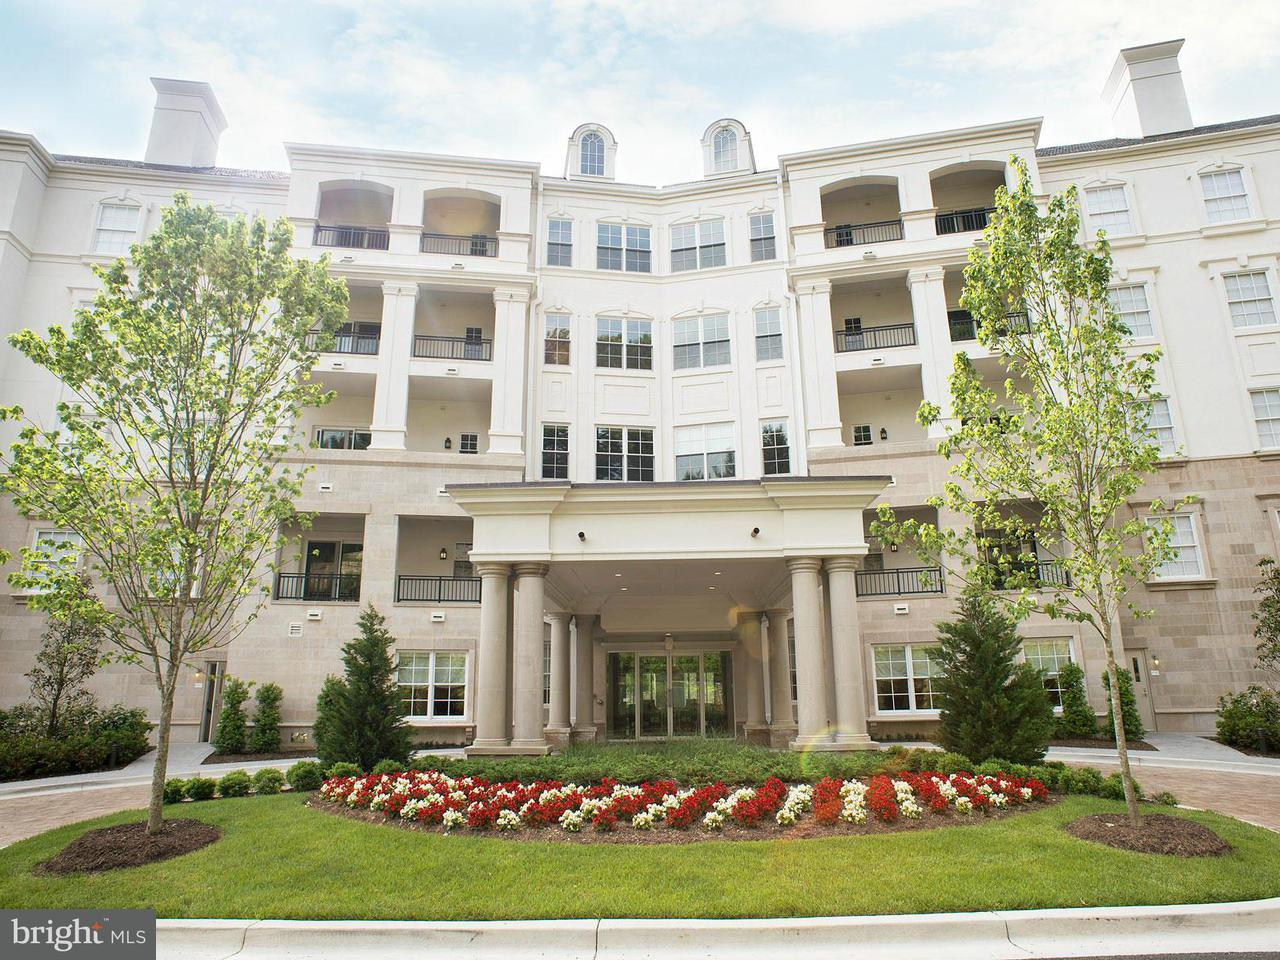 Single Family Home for Sale at 8111 RIVER RD #442 8111 RIVER RD #442 Bethesda, Maryland 20817 United States